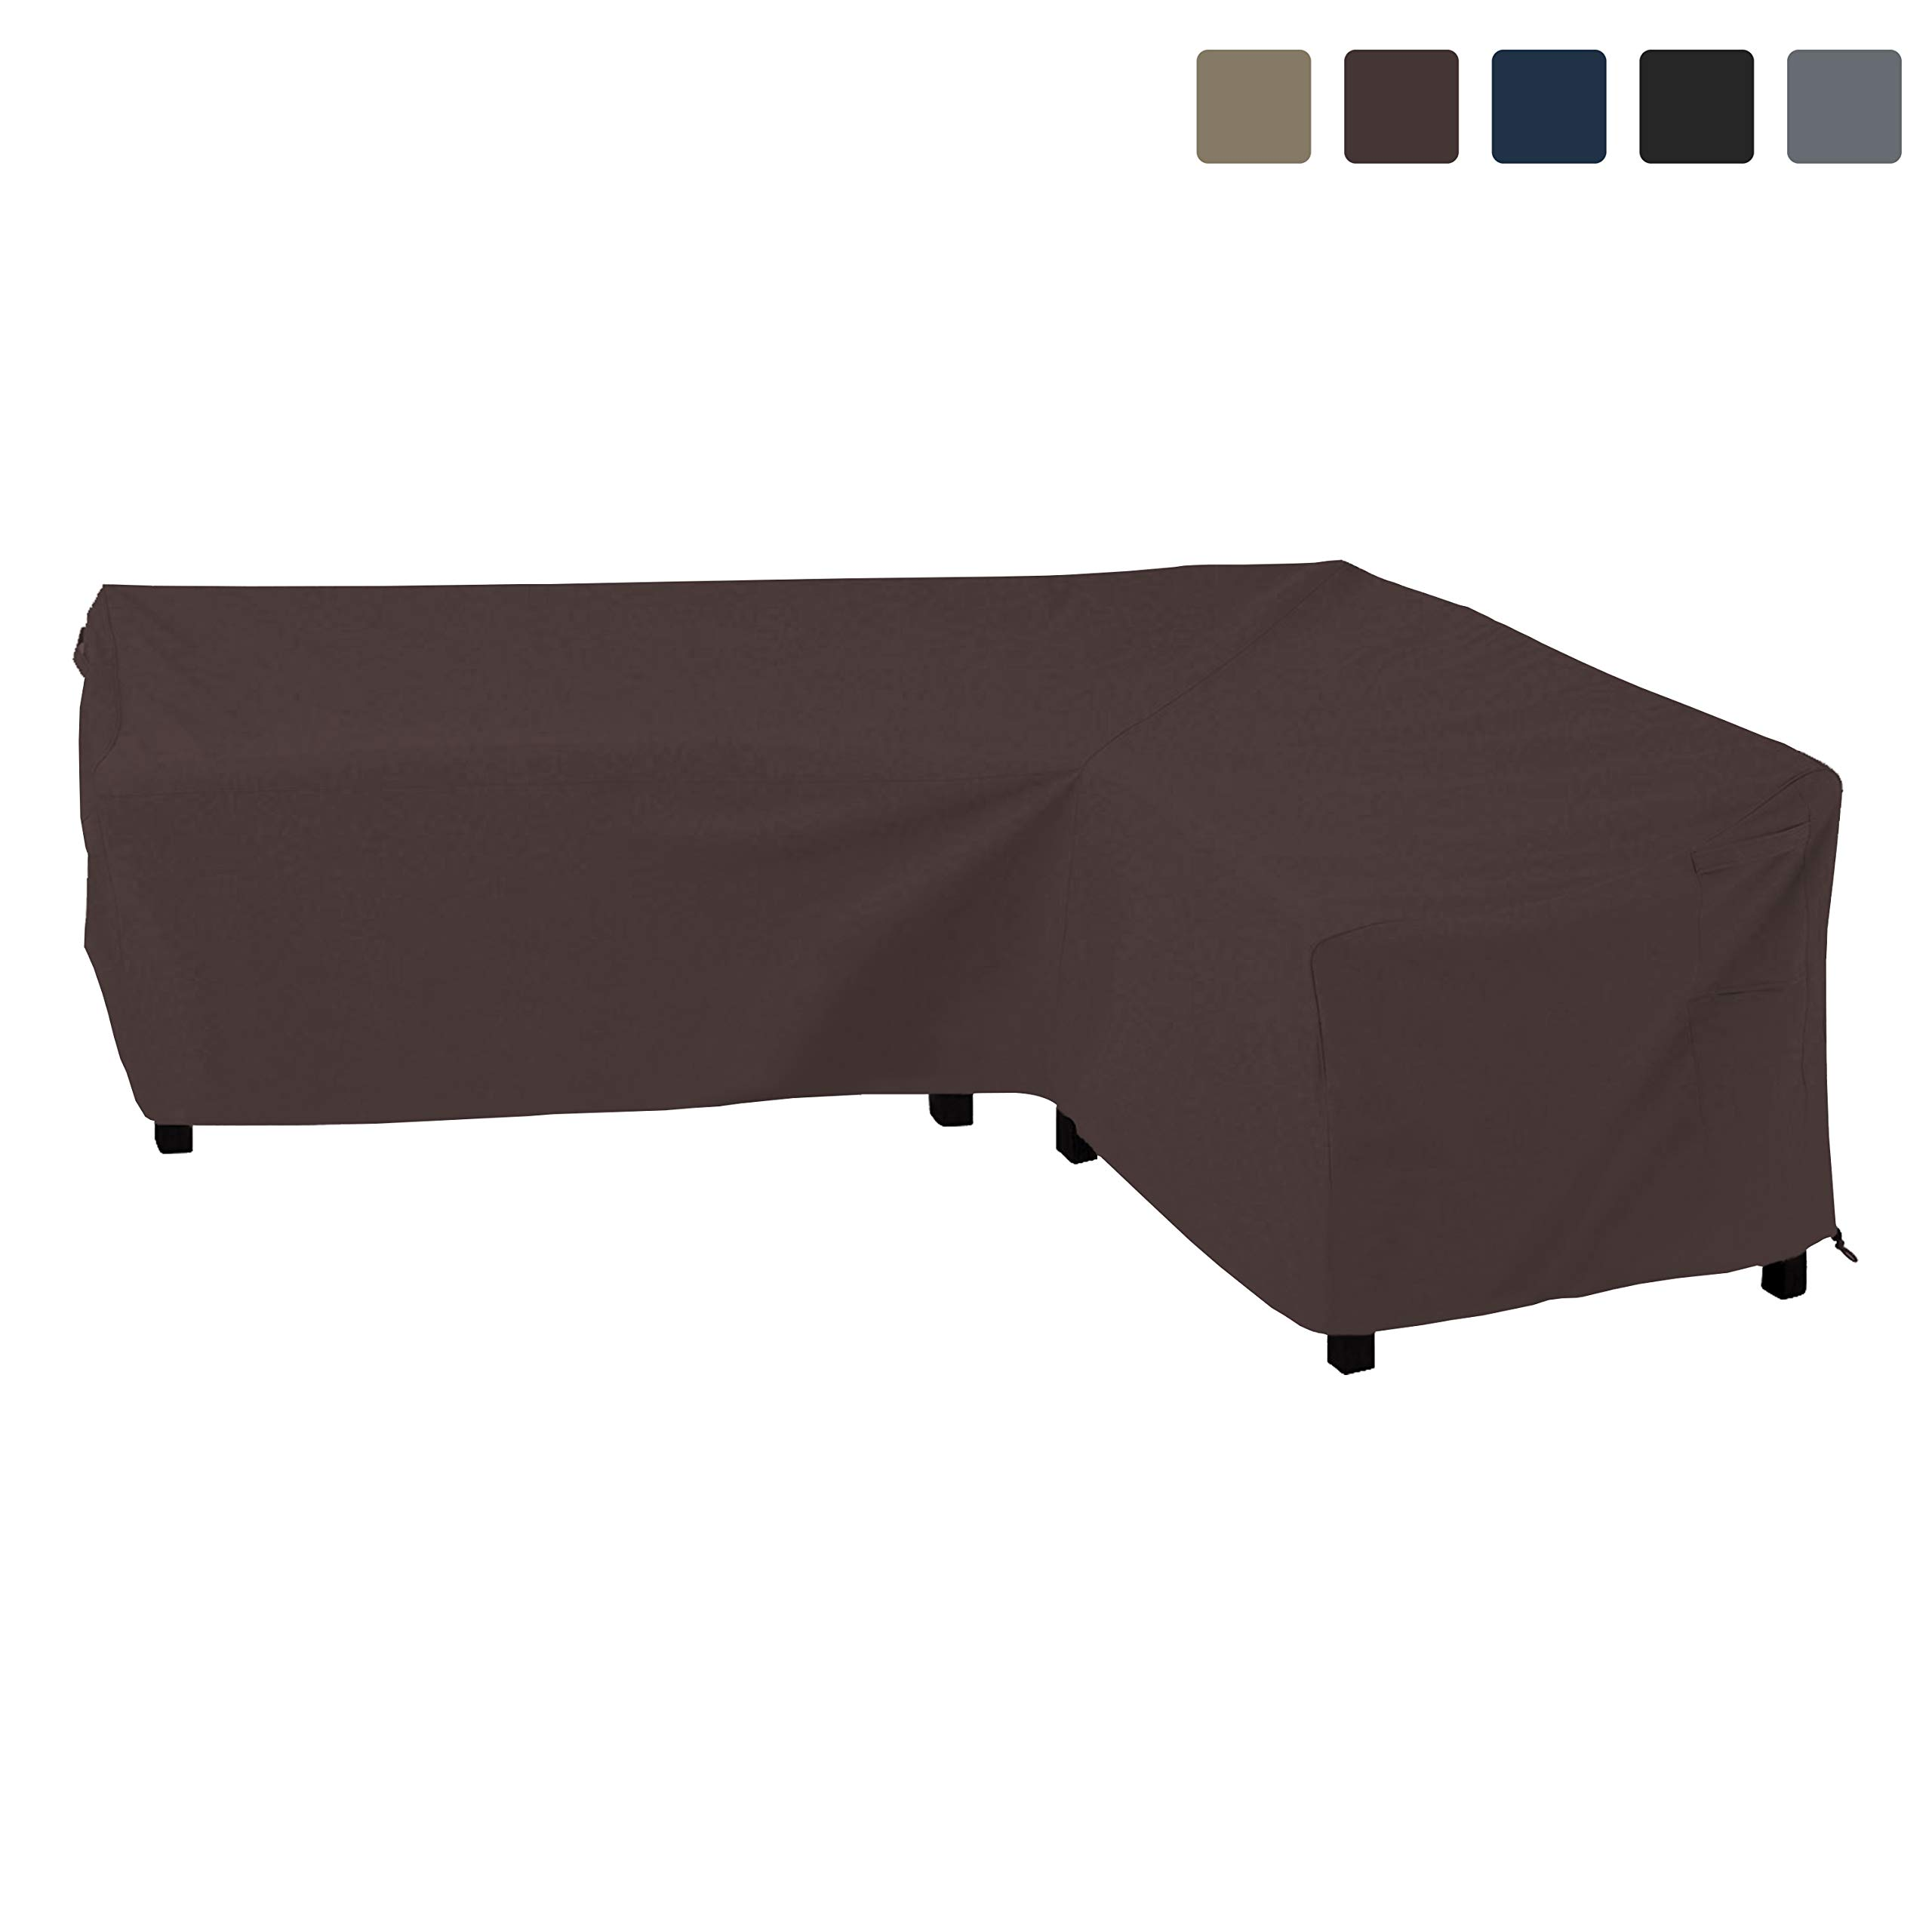 COVERS & ALL Patio Sectional Sofa Cover 12 Oz Waterproof - 100% UV & Weather Resistant PVC Coated 90'' x 120'' x 35''D x 33'' H - L Shape Sofa Cover for Indoor/Outdoor (Right Facing Sofa, Coffee)